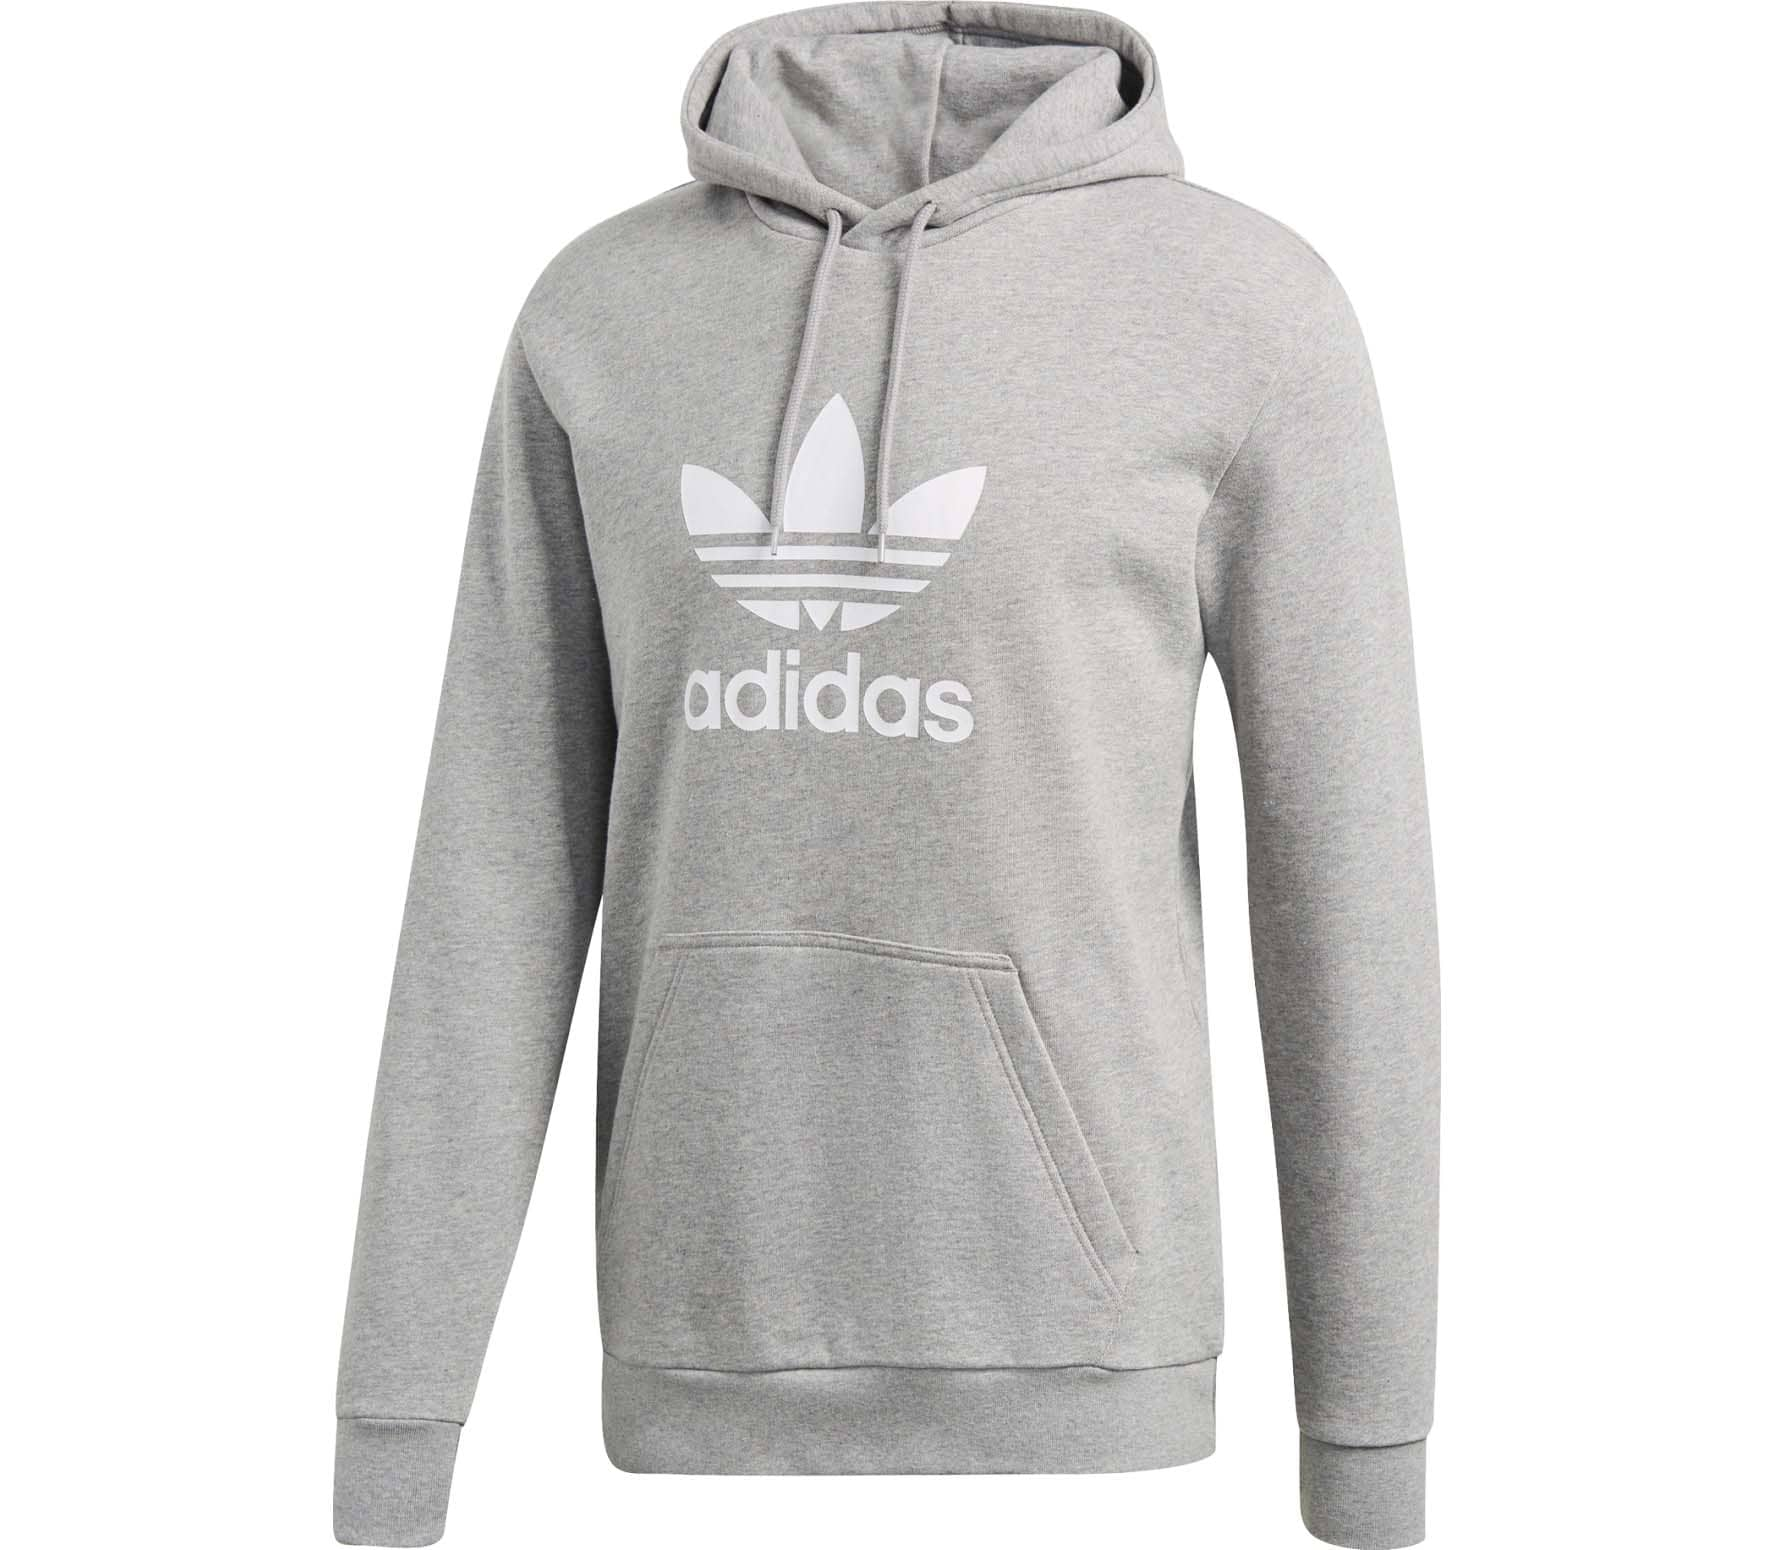 buy online 5ccb2 4a30f adidas Originals Trefoil Warm-Up Herren Hoodie grau